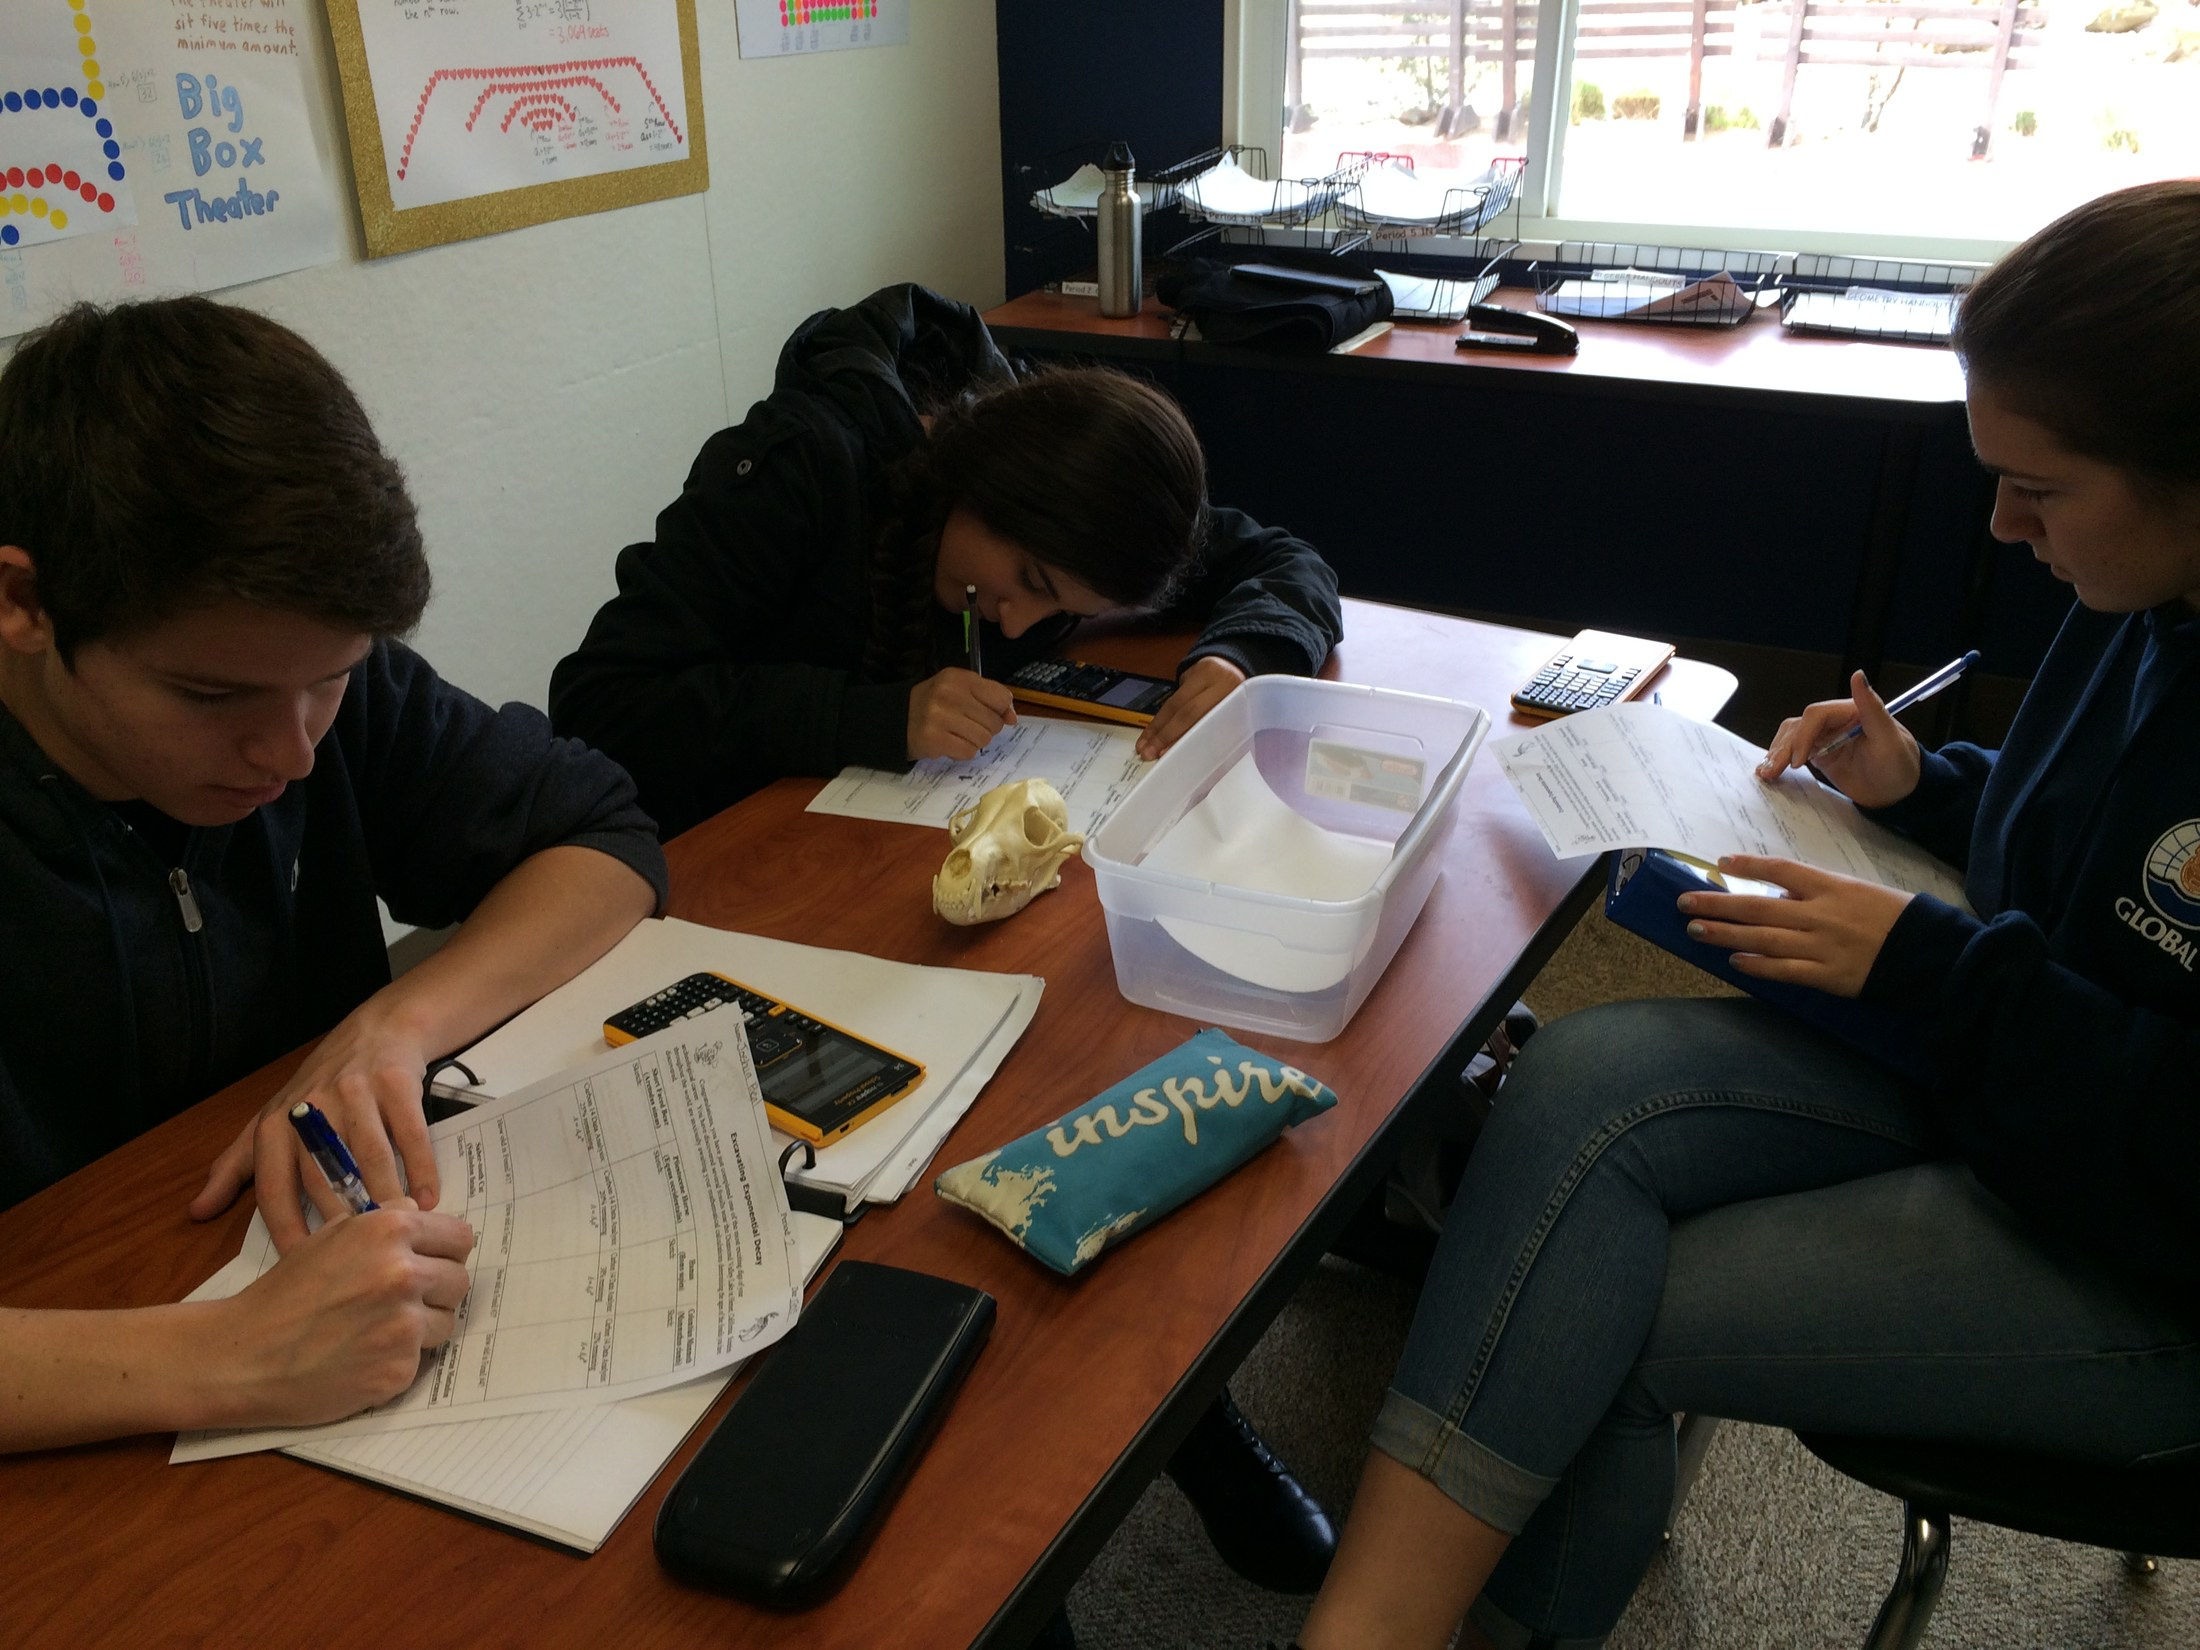 Today the sophomores used natural logarithms to solve problems involving radioactive decay.